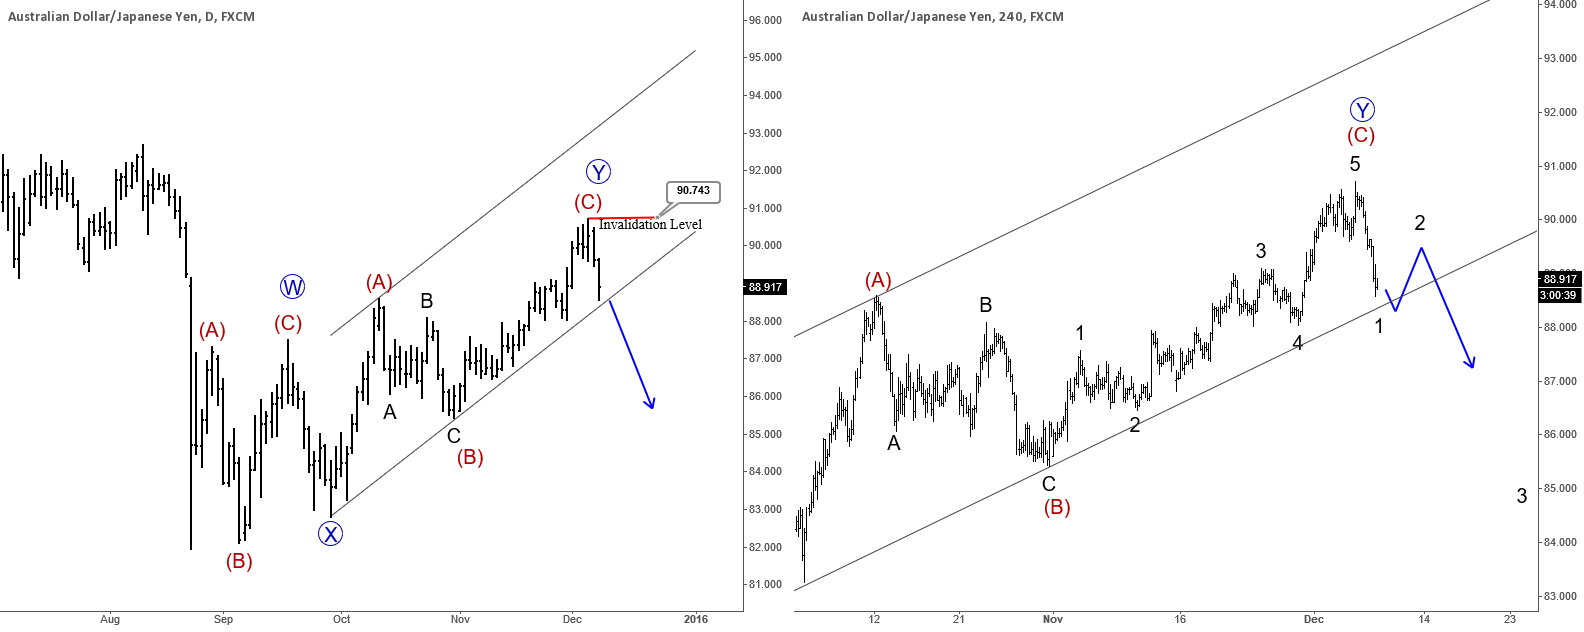 AUDJPY : More Wekaness Could Follow